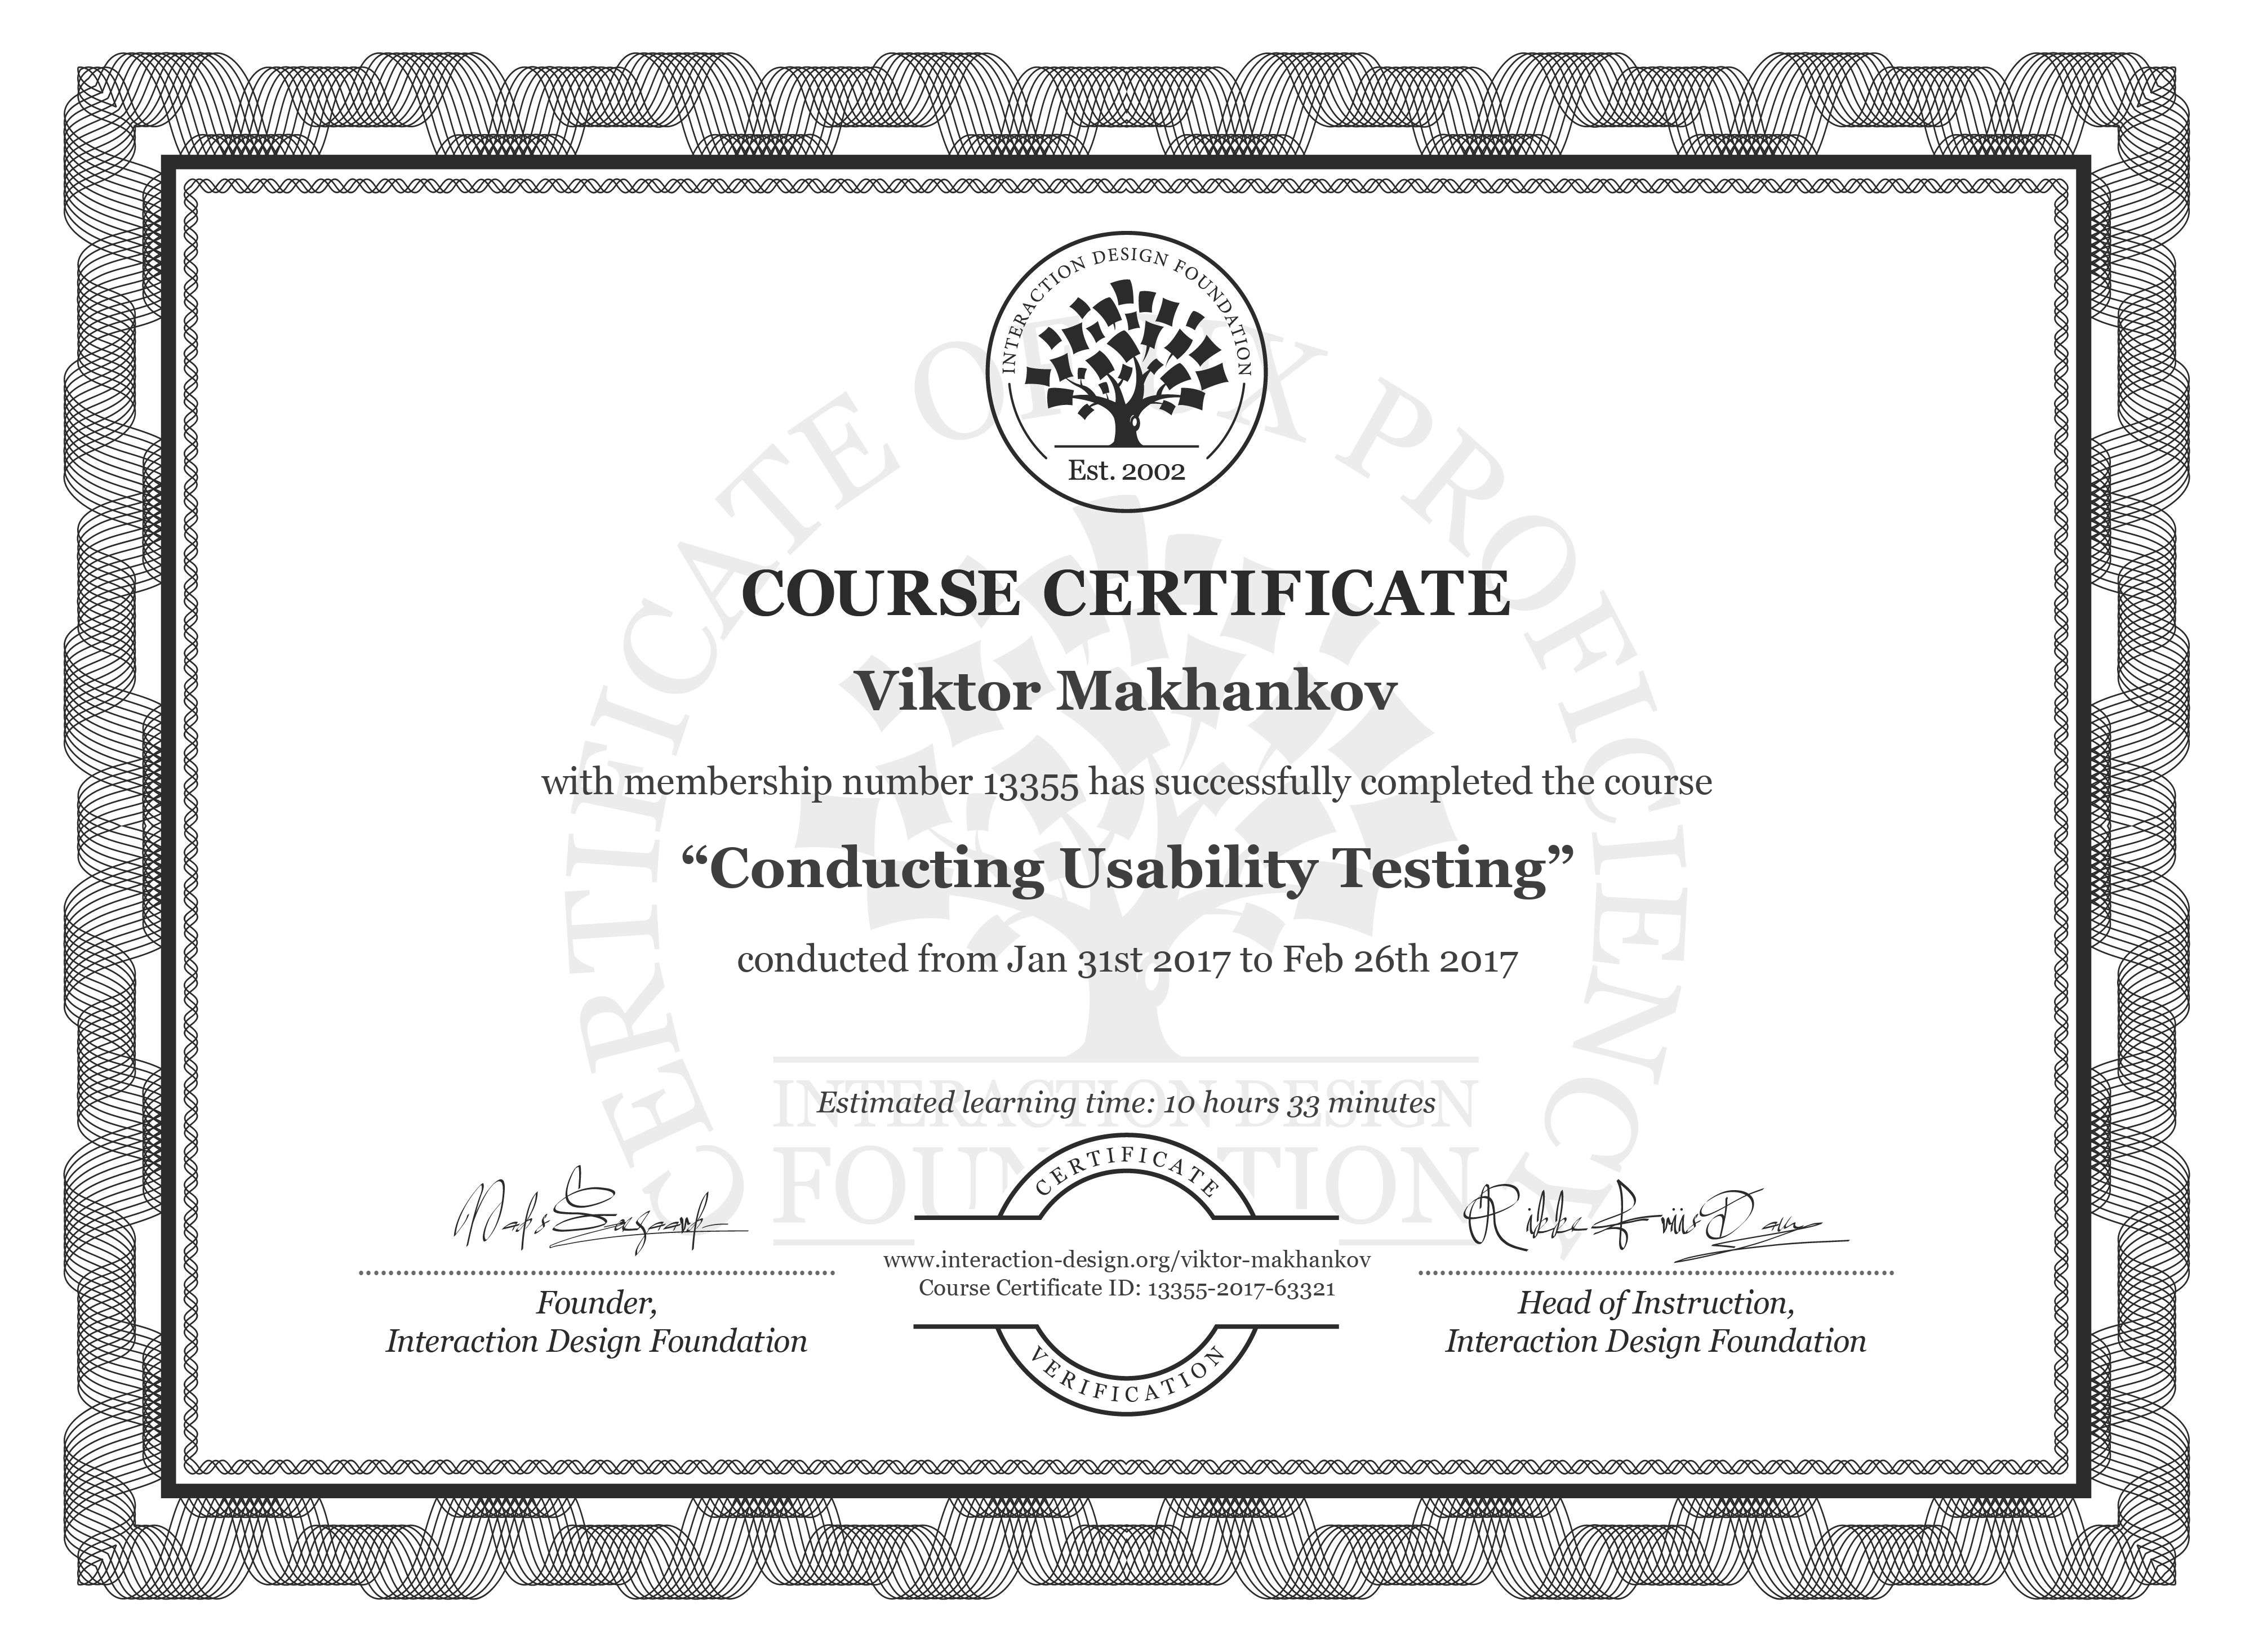 Viktor Makhankov's Course Certificate: Conducting Usability Testing